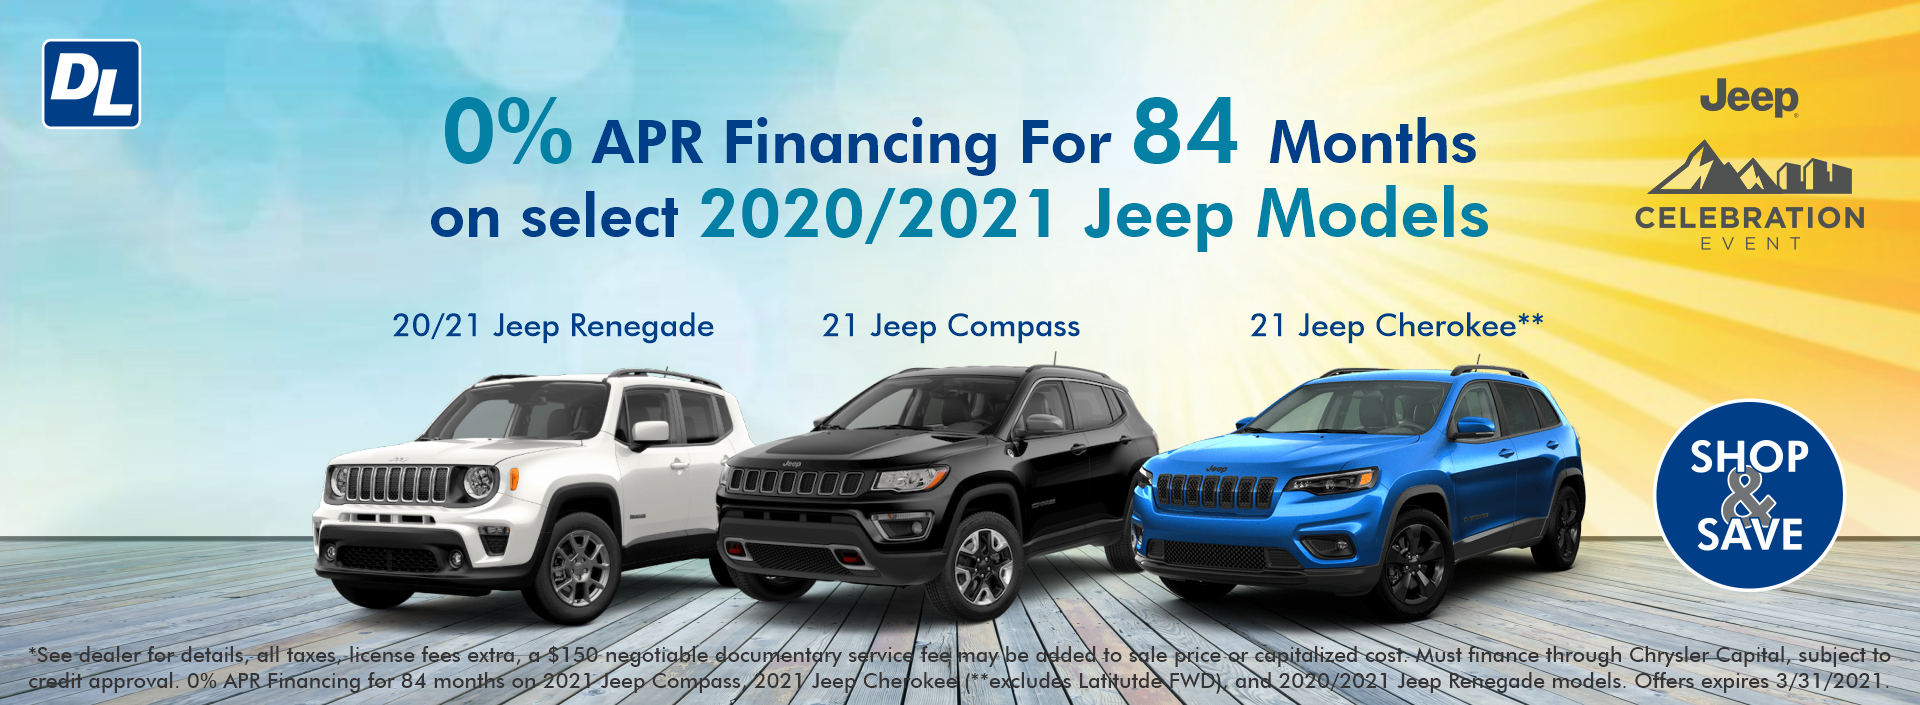 2021MarBanners-CDJR-jeep0for84